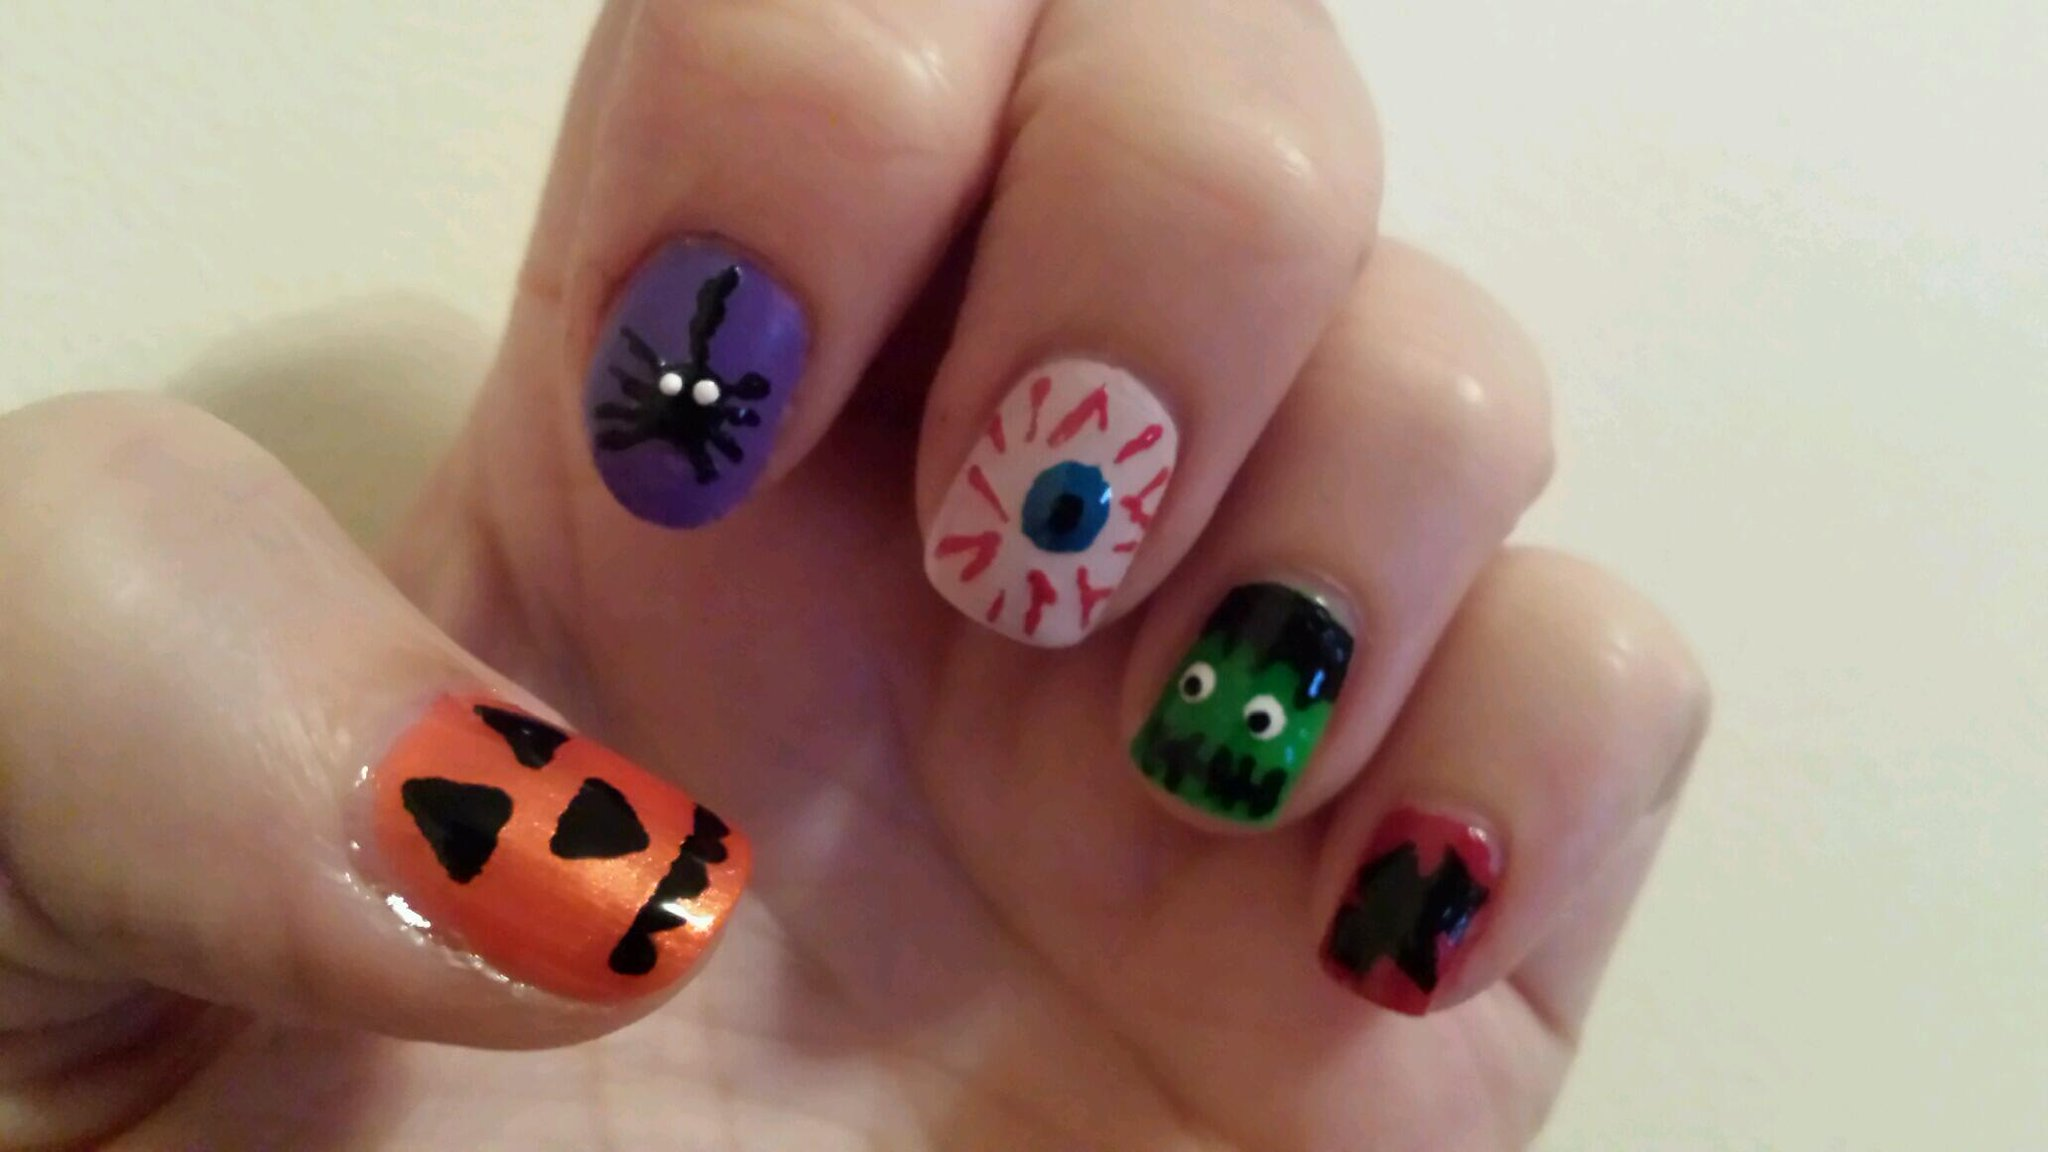 RT @laylalucas: @Avon_UK these are my Halloween nails http://t.co/eJwKwQBpL8